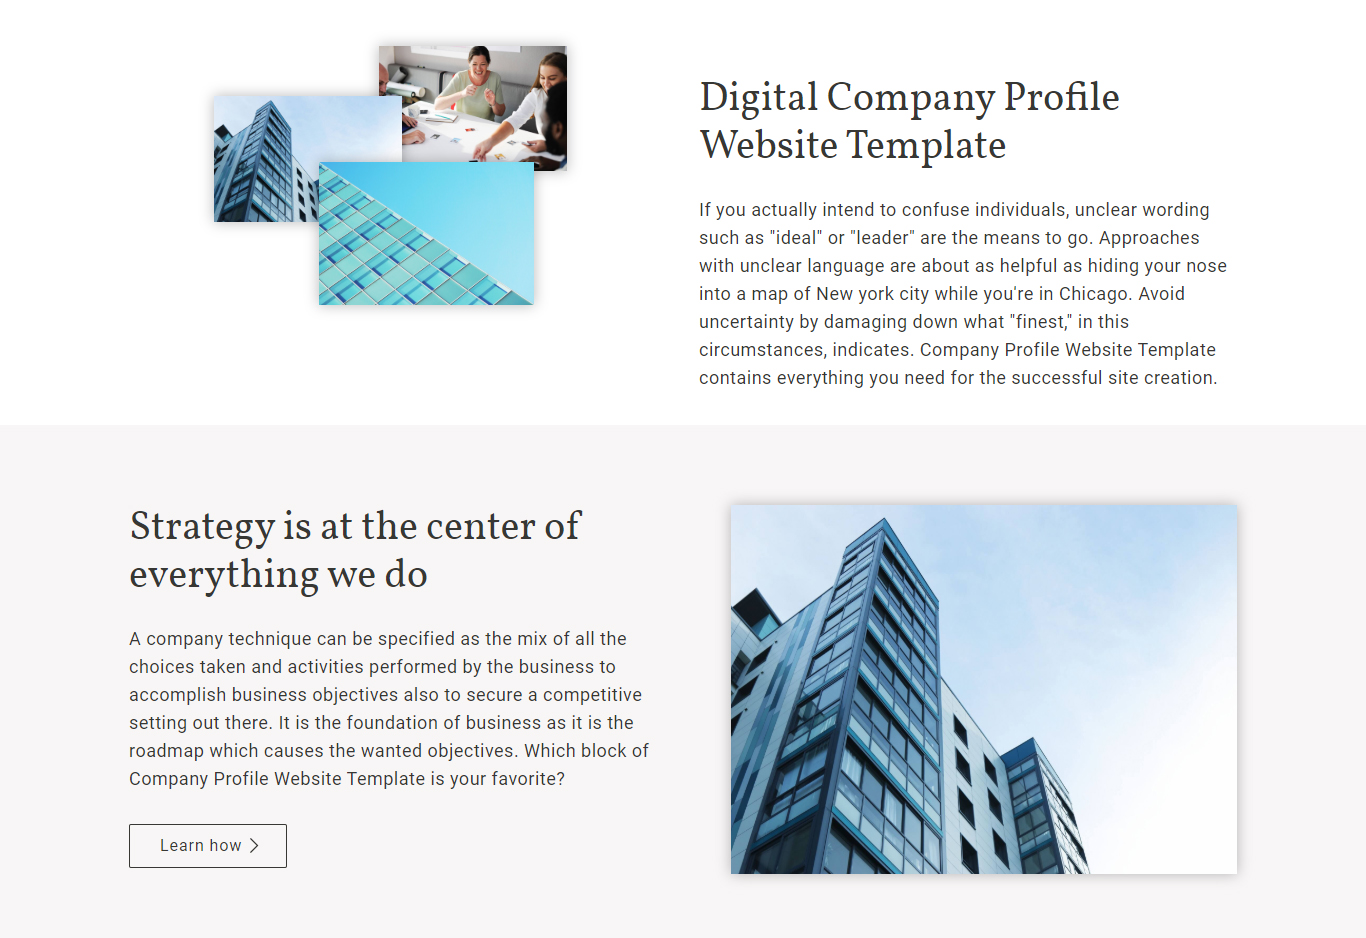 Digital Company Profile Website Template